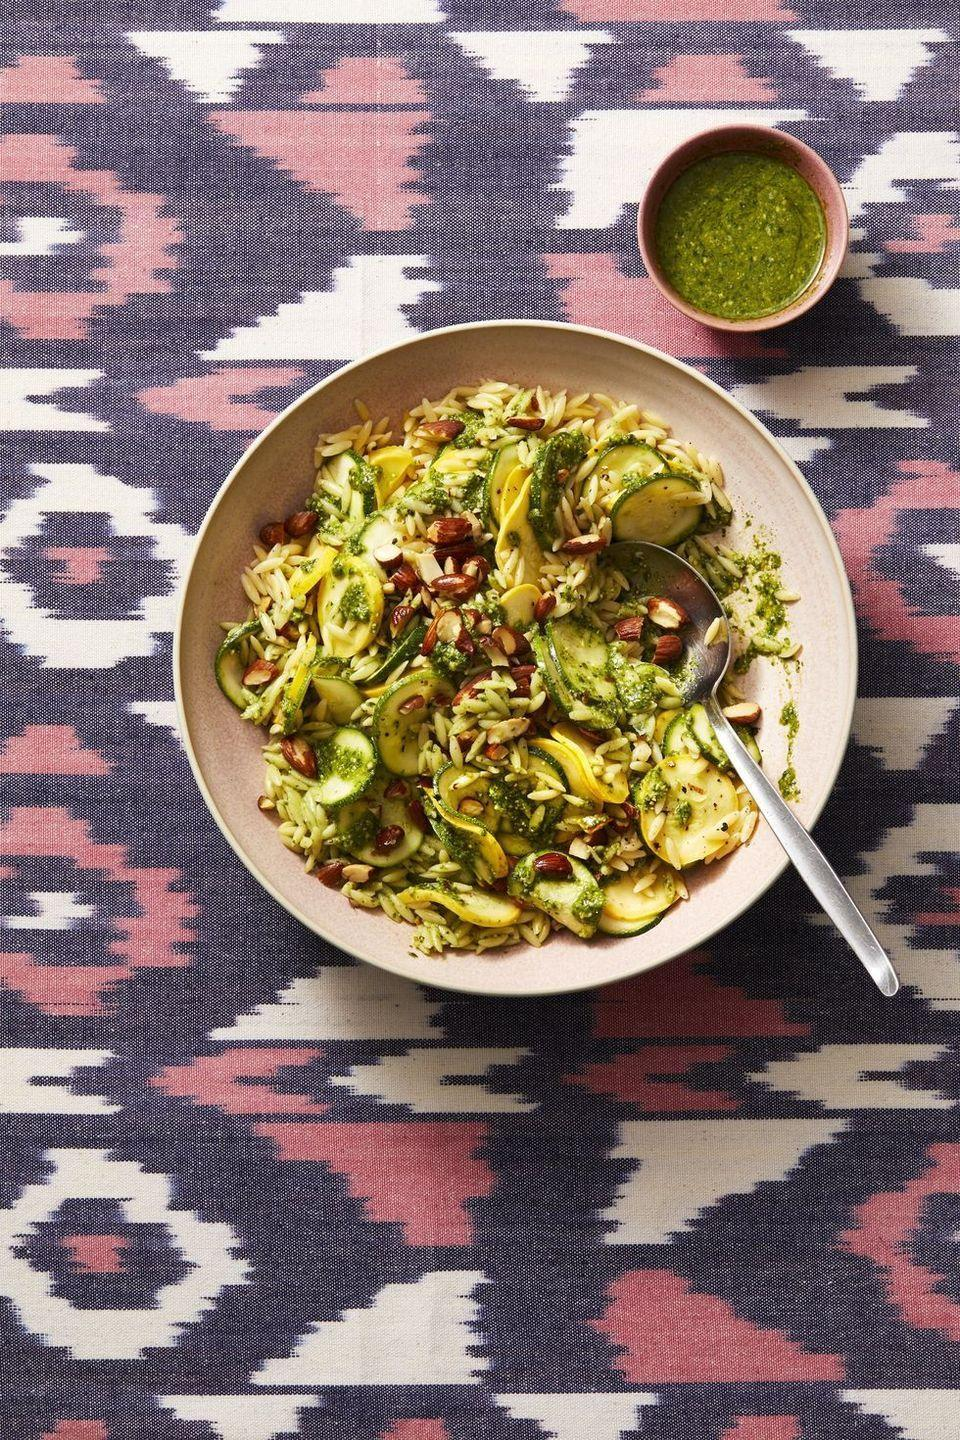 "<p>Marinating zucchini in white wine vinegar, then tossing it with pesto, really makes the summer vegetable shine. Serve it with <a href=""https://www.goodhousekeeping.com/food-recipes/a28611486/seared-chicken-with-pesto-zucchini-orzo-recipe/"" rel=""nofollow noopener"" target=""_blank"" data-ylk=""slk:juicy chicken"" class=""link rapid-noclick-resp"">juicy chicken</a> for a delicious main dish.</p><p><em><a href=""https://www.goodhousekeeping.com/food-recipes/a28105024/pesto-zucchini-orzo-recipe/"" rel=""nofollow noopener"" target=""_blank"" data-ylk=""slk:Get the recipe for Pesto Zucchini Orzo »"" class=""link rapid-noclick-resp"">Get the recipe for Pesto Zucchini Orzo »</a></em></p>"